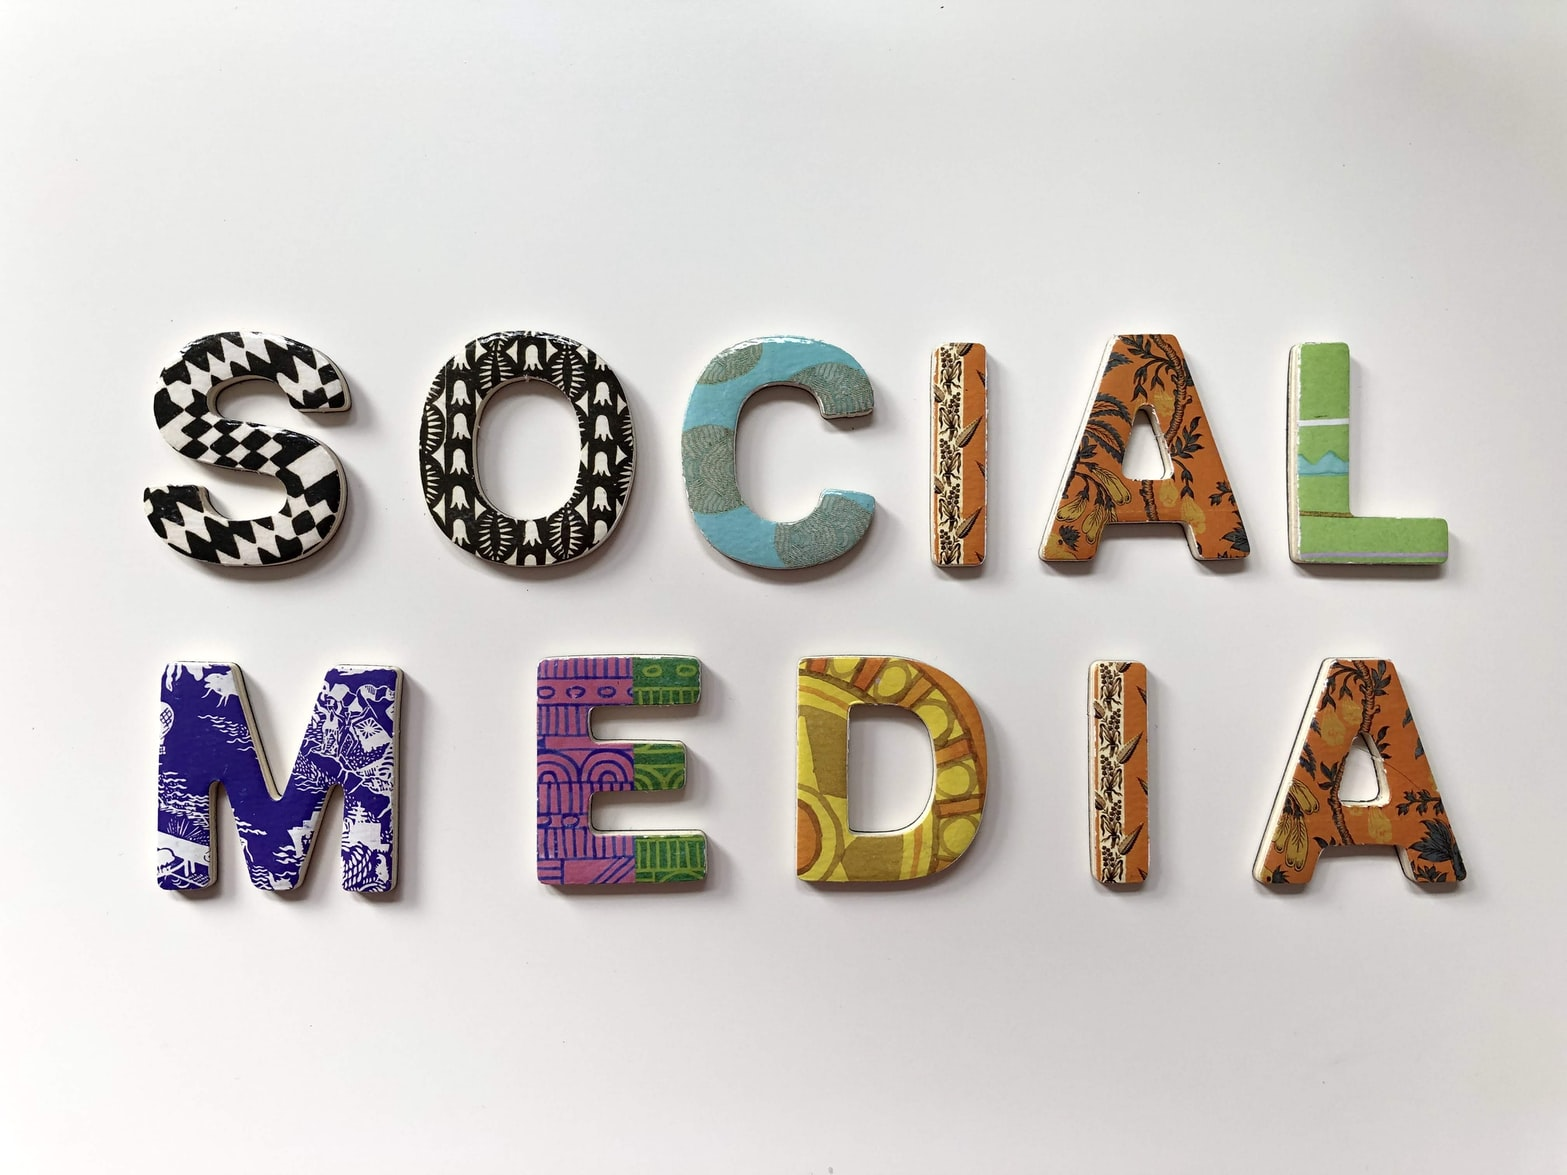 SEO content promotion on social media